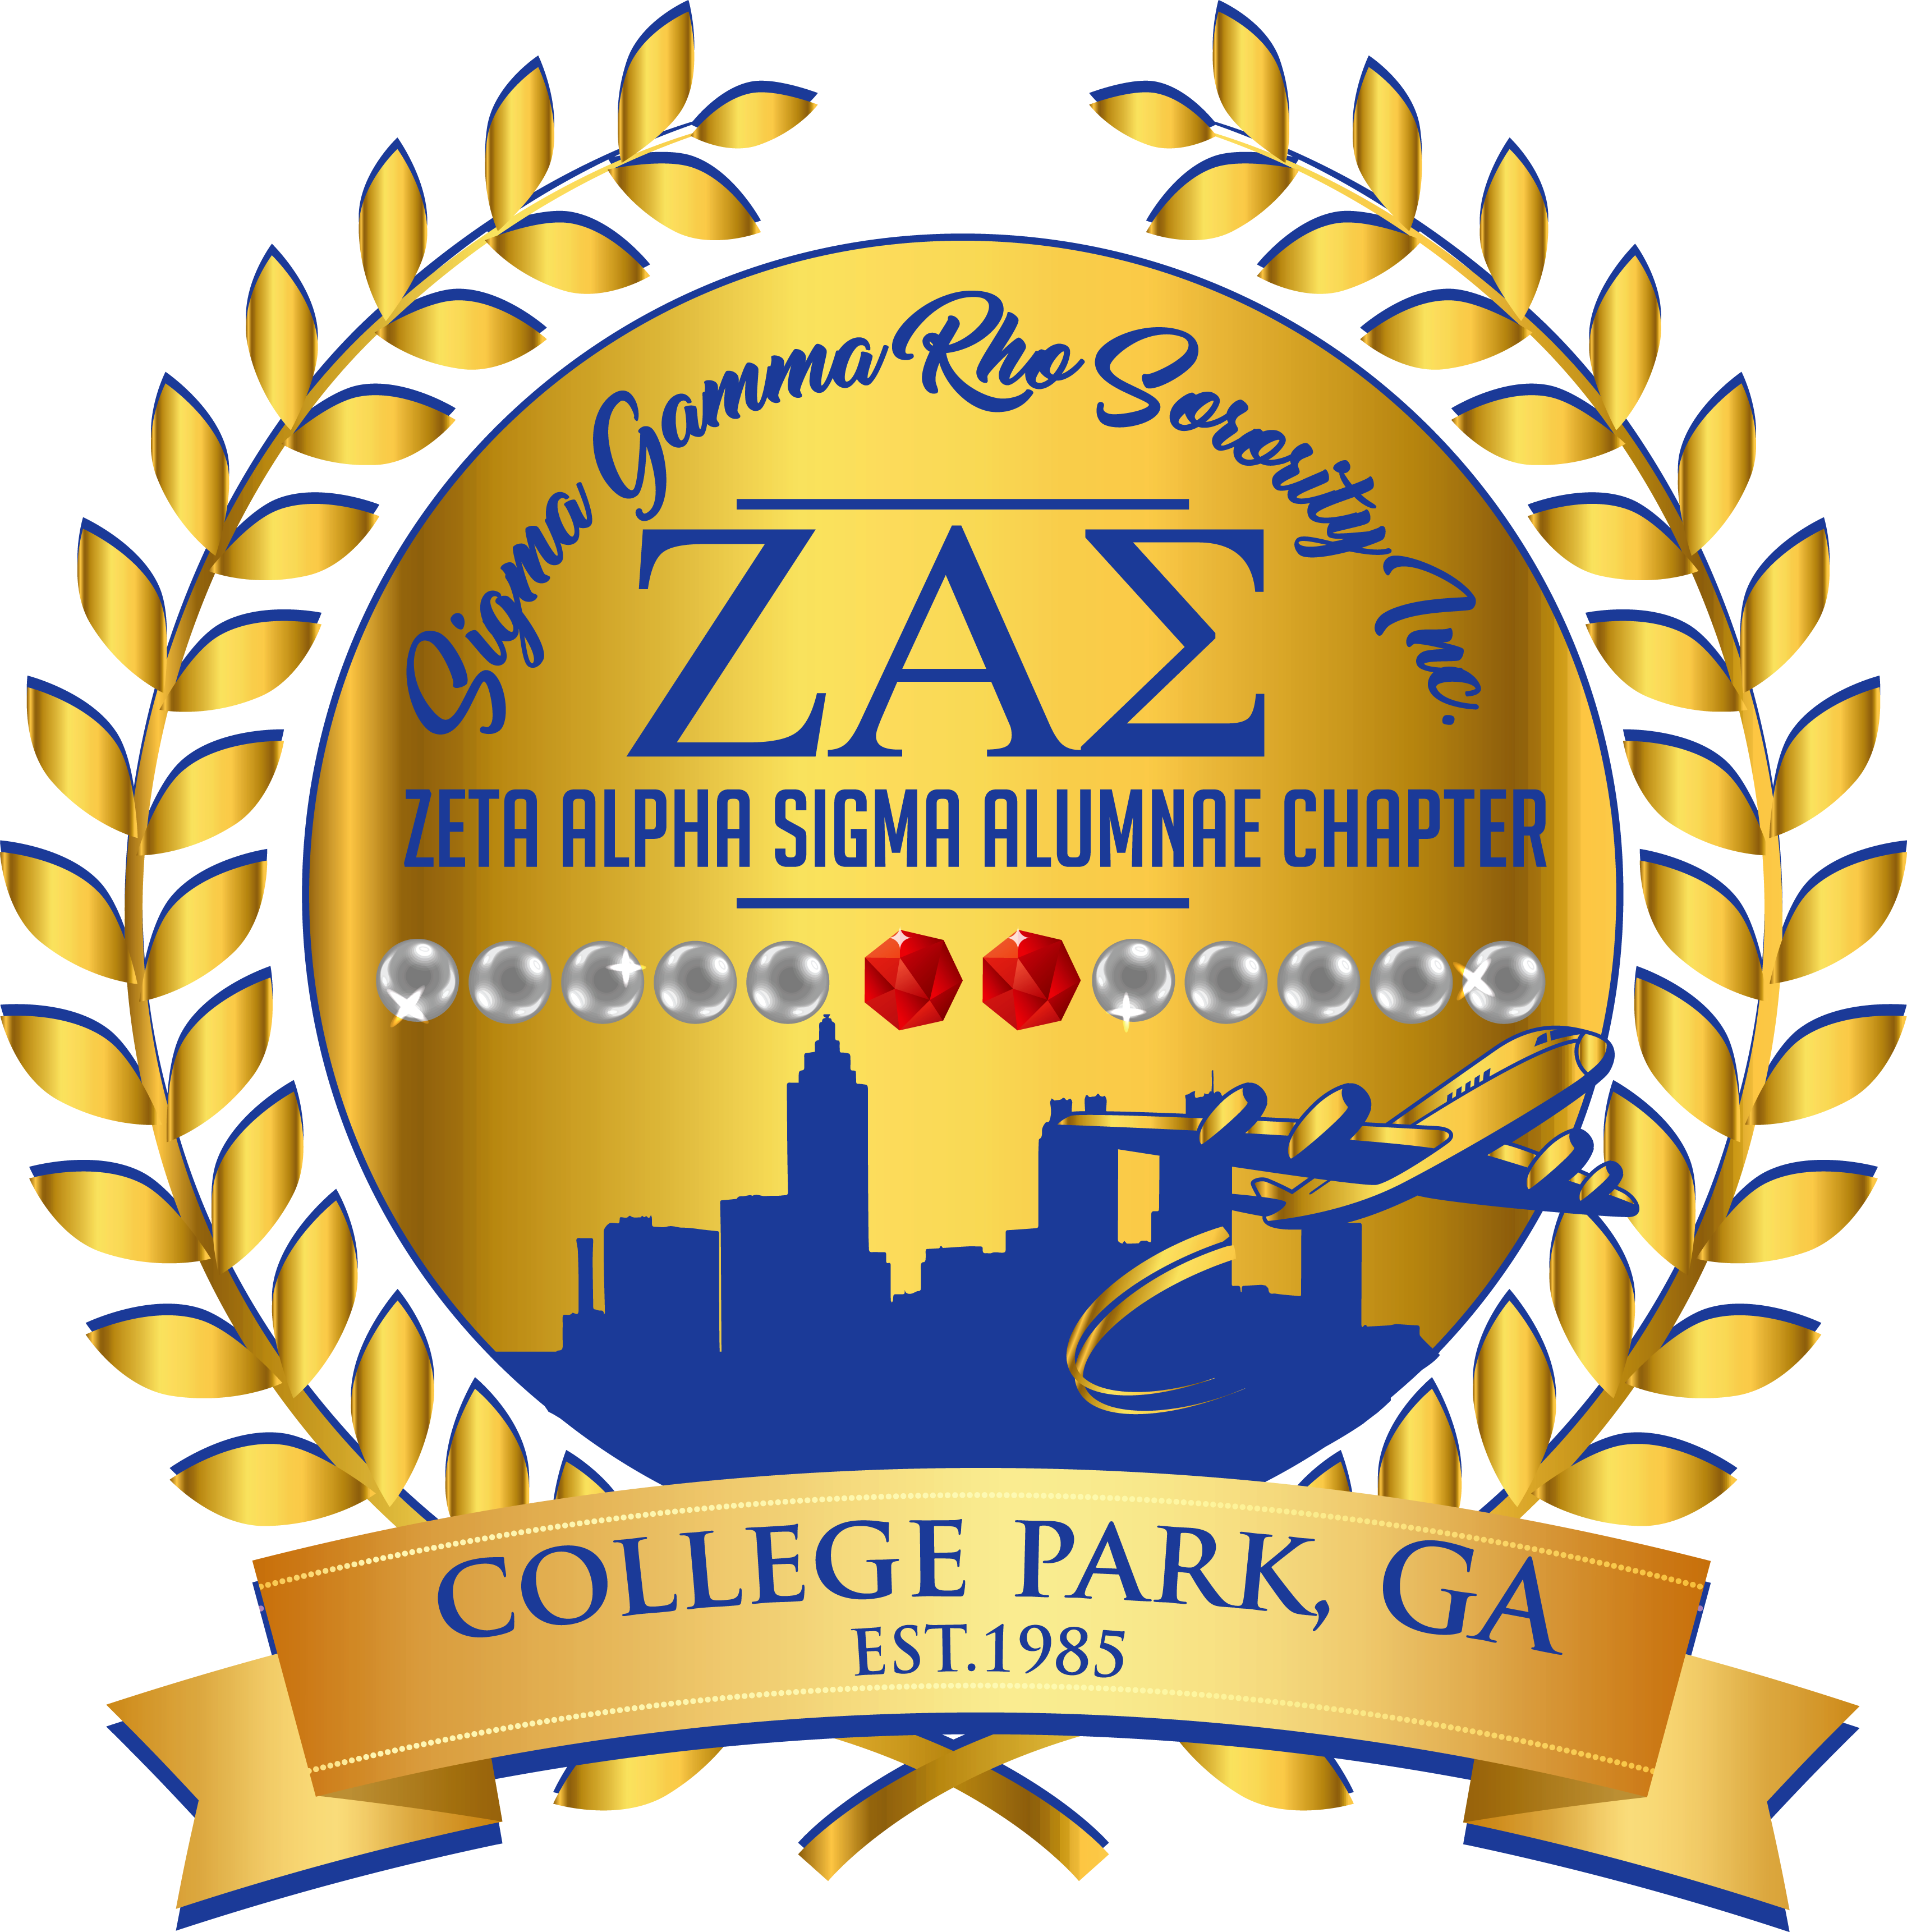 About zas zeta alpha sigma alumnae chapter of sigma gamma rho about zas zeta alpha sigma alumnae chapter of sigma gamma rho sorority incorporated biocorpaavc Images